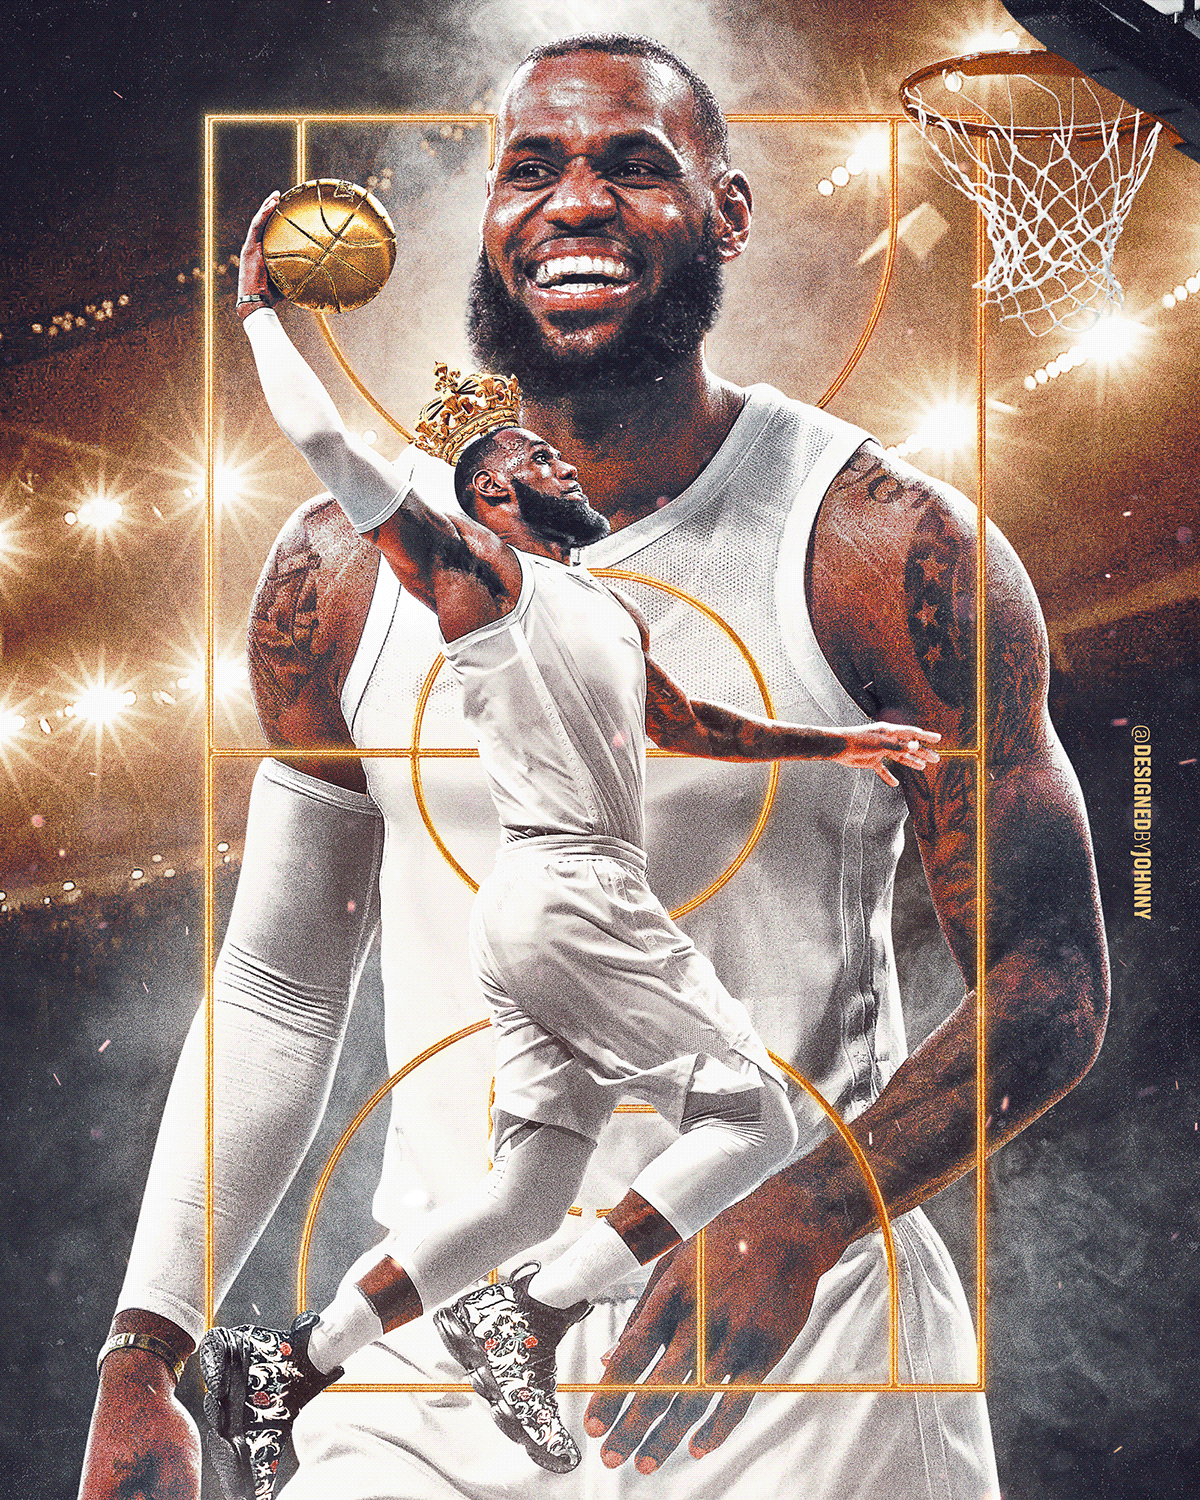 Nba The Finals Projects Photos Videos Logos Illustrations And Branding On Behance Lebron James Poster Lebron James Art Lebron James Wallpapers